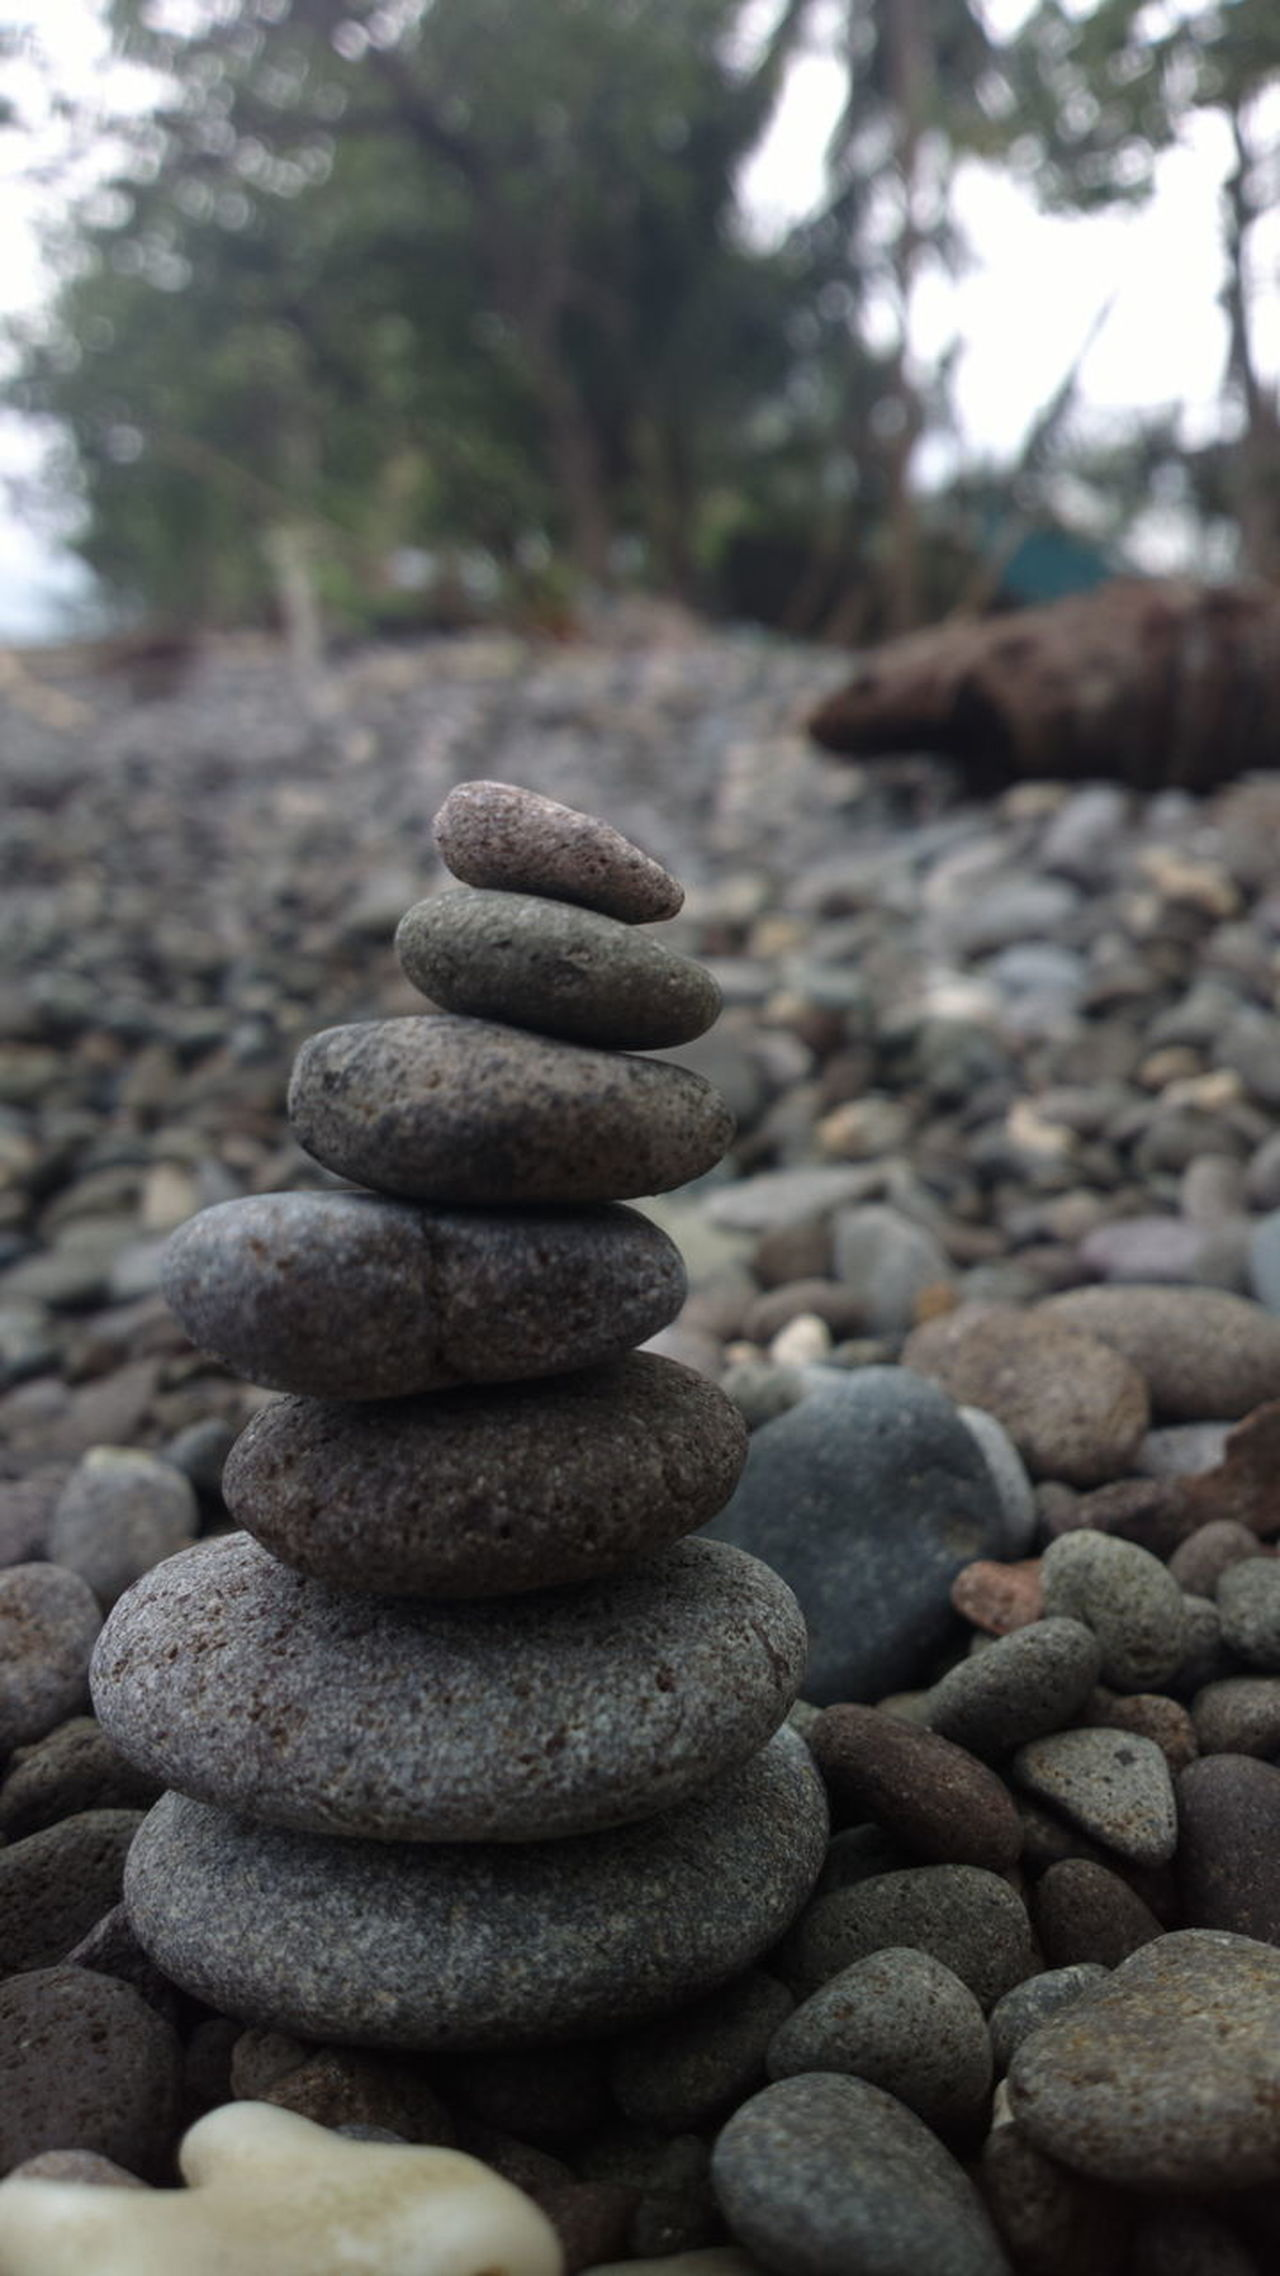 Arrangement Balance Beauty In Nature Close-up Cultures Day Focus On Foreground Heap Japanese Garden Large Group Of Objects Nature No People Outdoors Pebble Rock - Object Sky Stability Stack Stone - Object Tranquil Scene Zen-like Eyeem Philippines